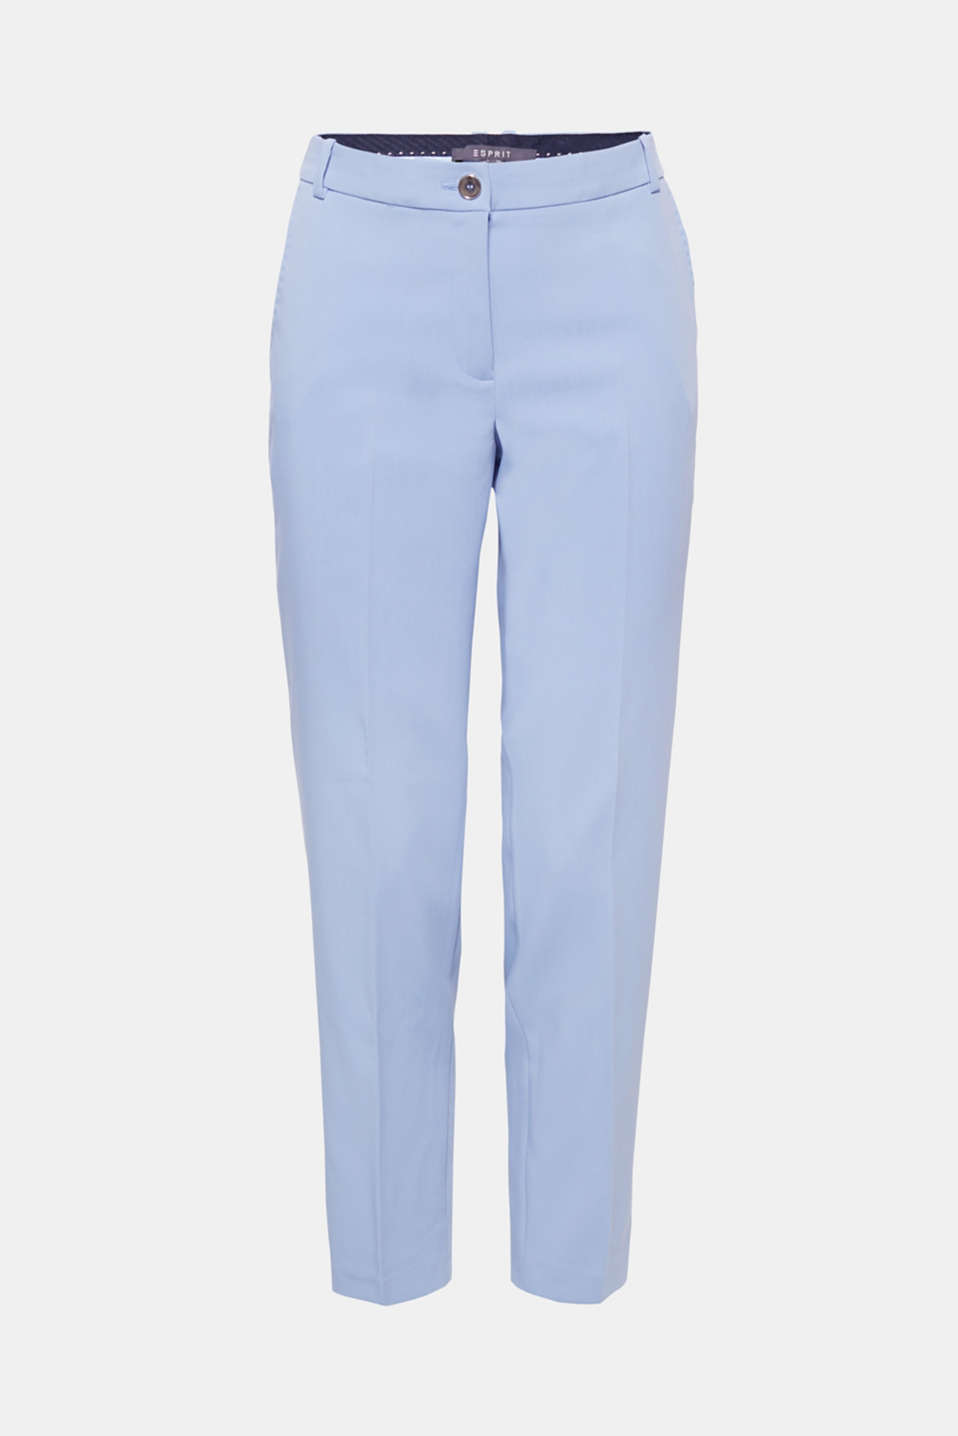 SPRING Mix + Match stretch trousers, LIGHT BLUE, detail image number 6